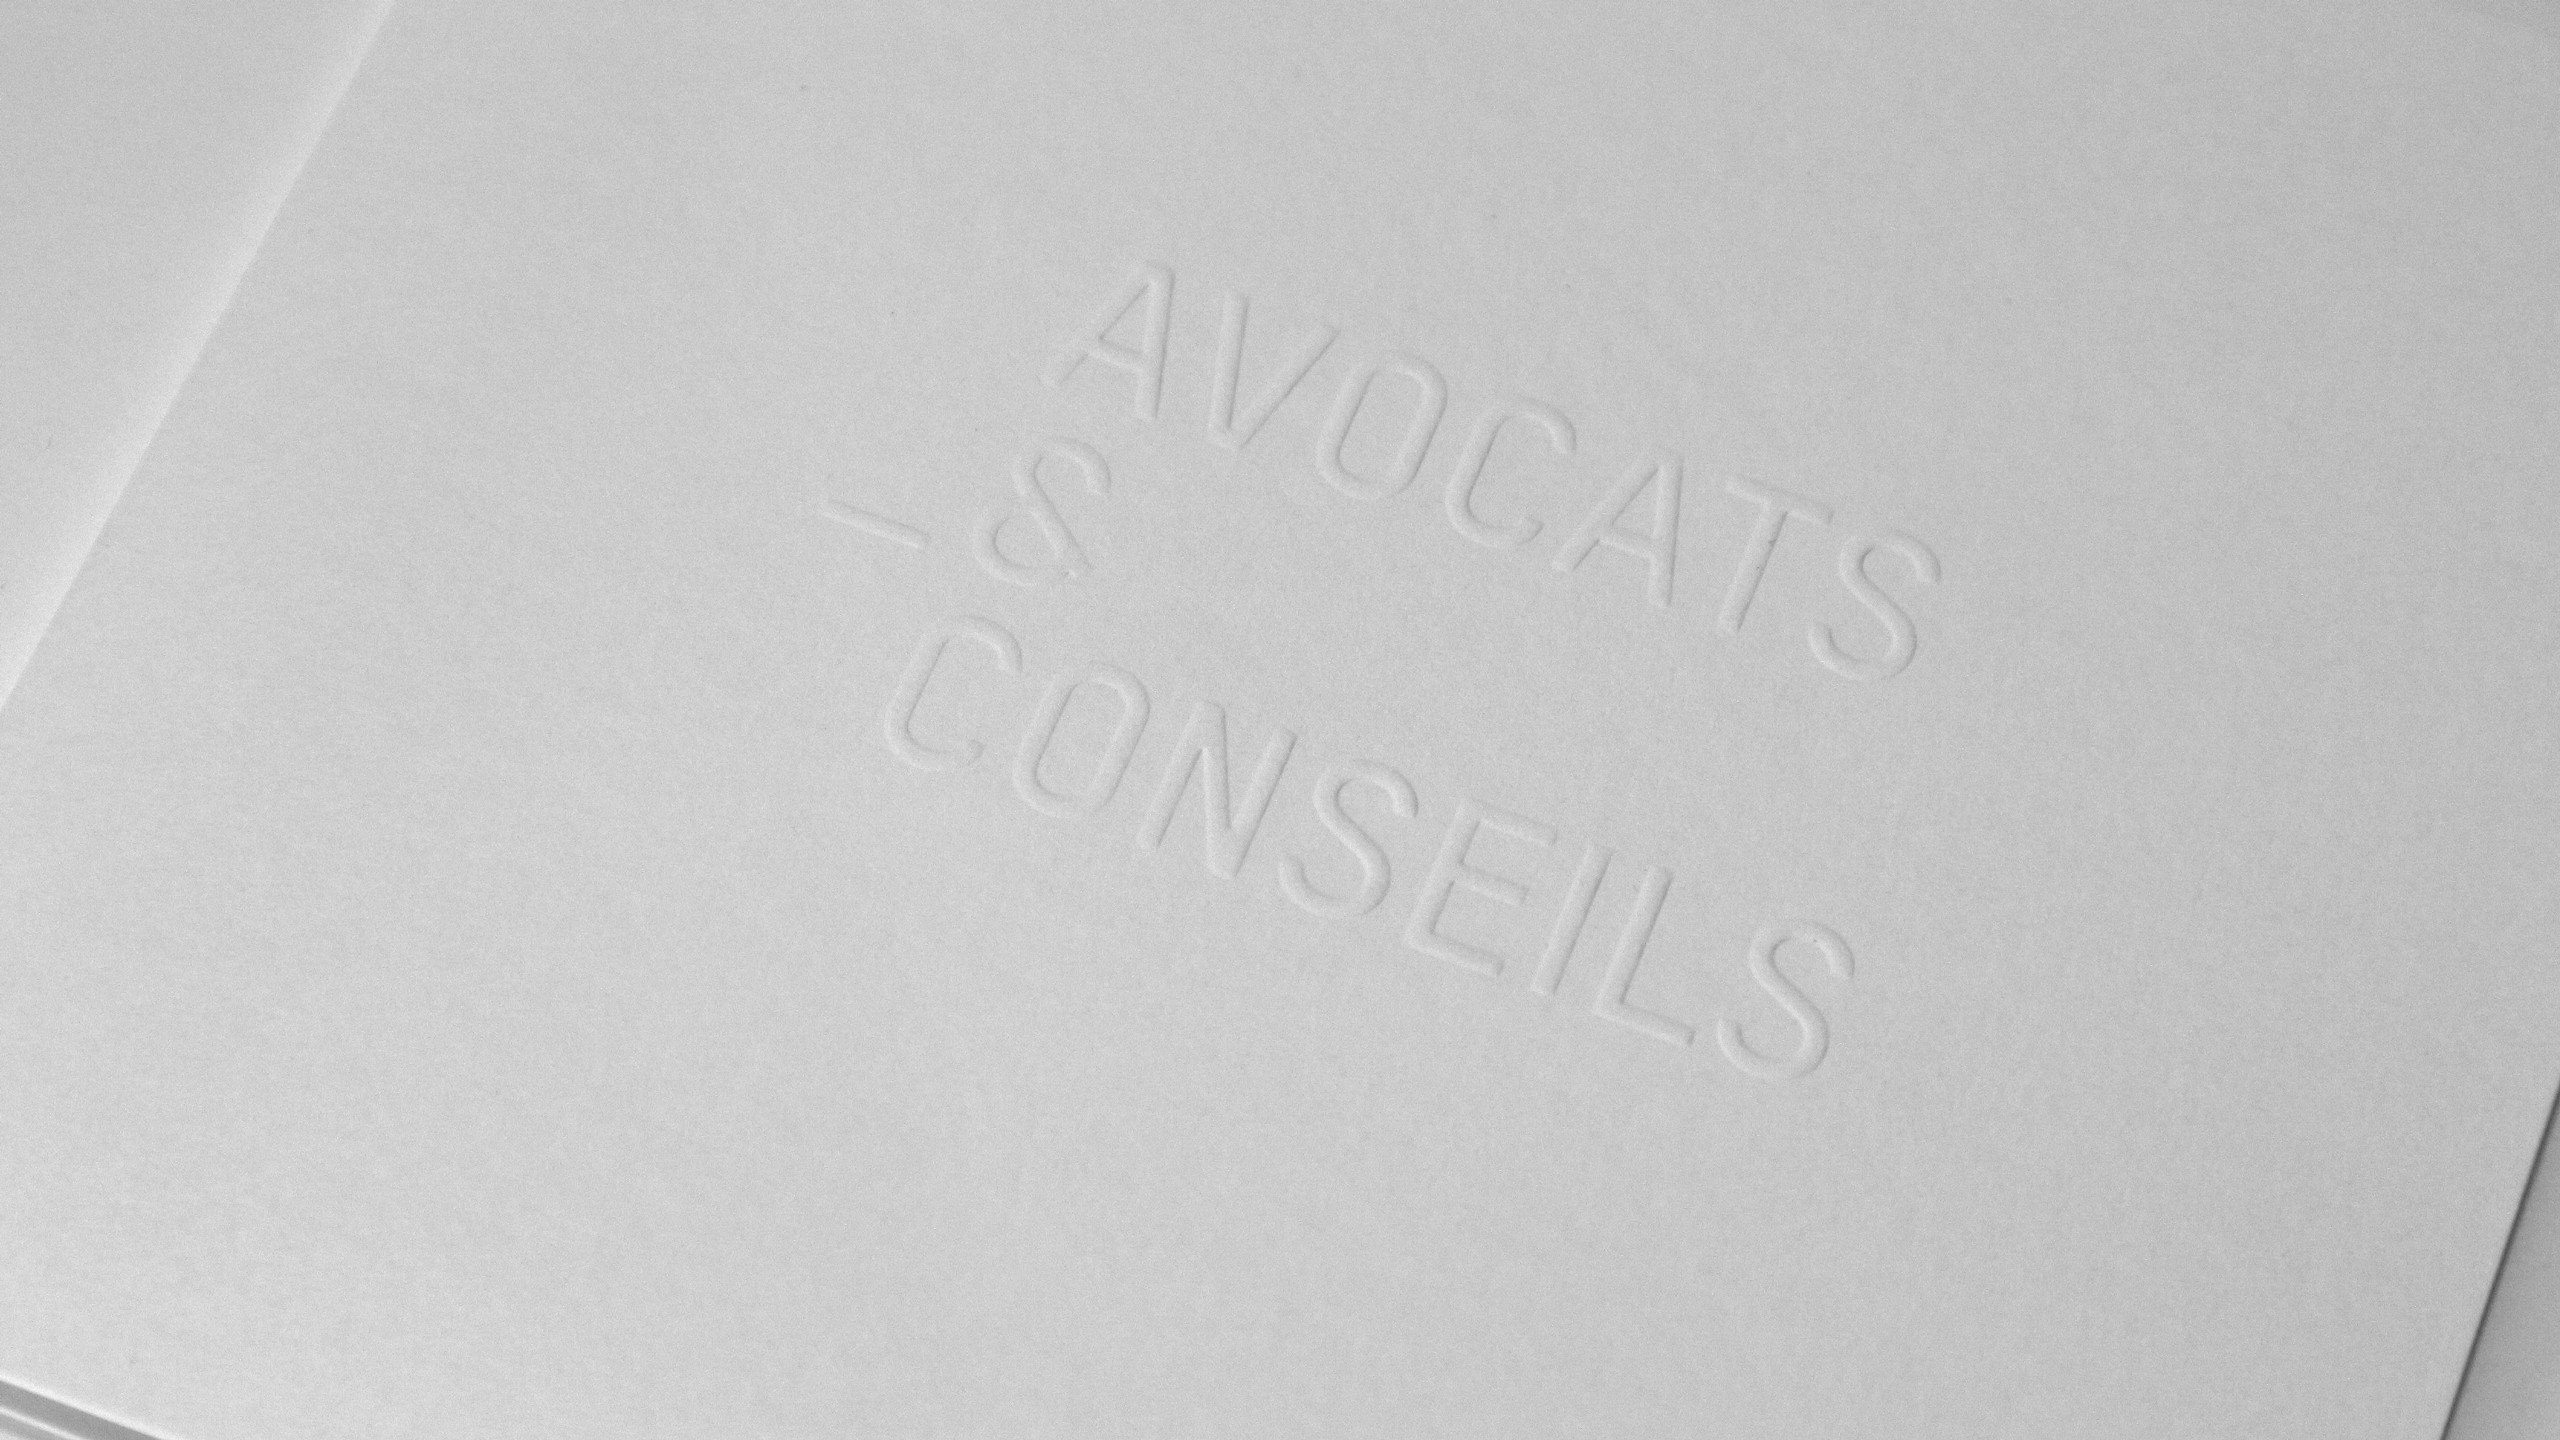 Avocats_logo_Embos_2560x1440px